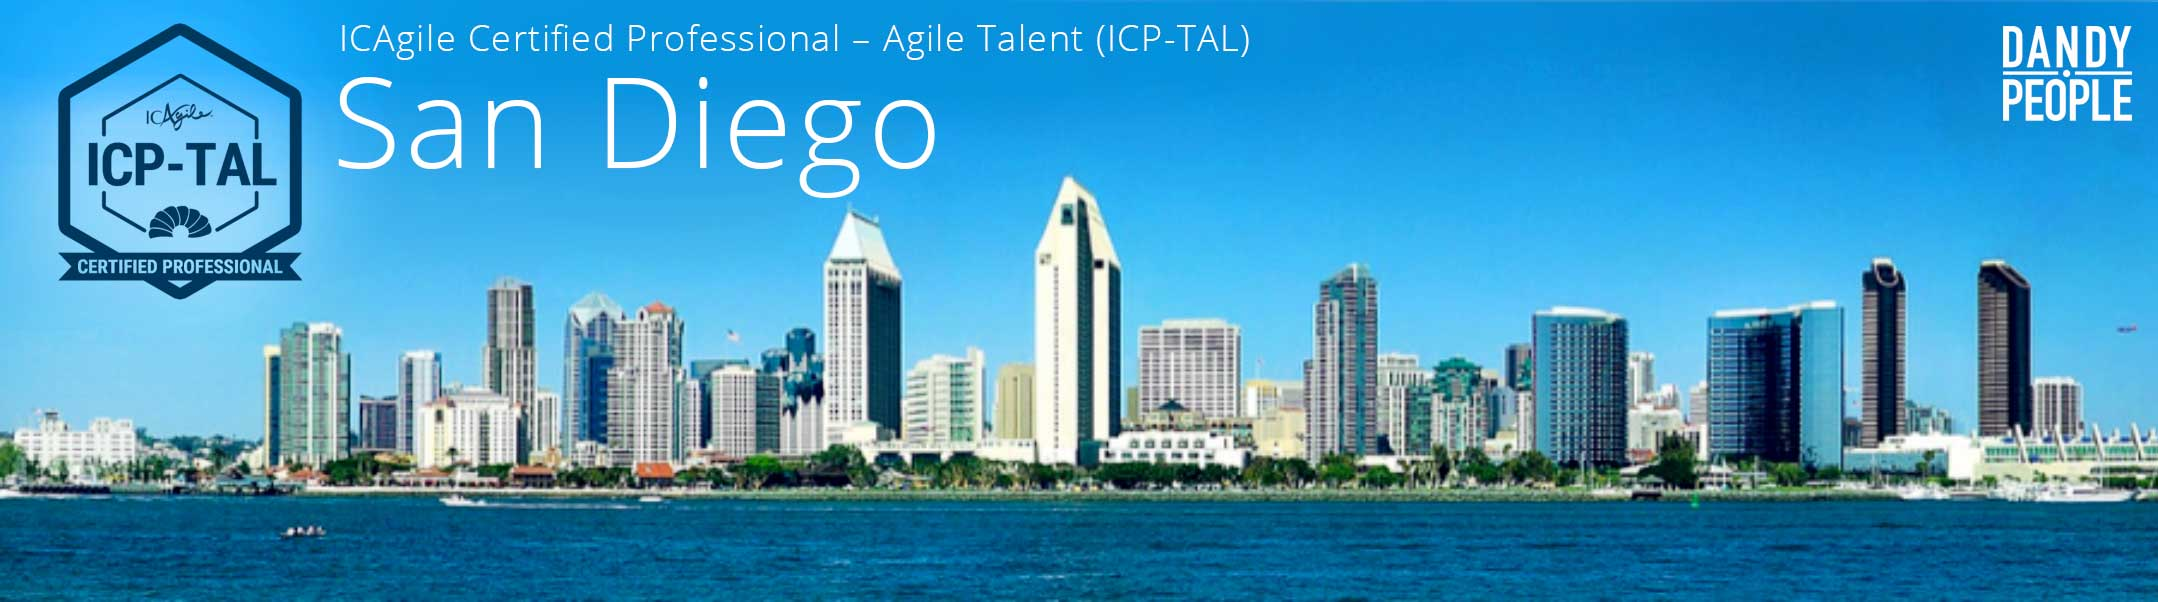 agile hr certification usa san diego